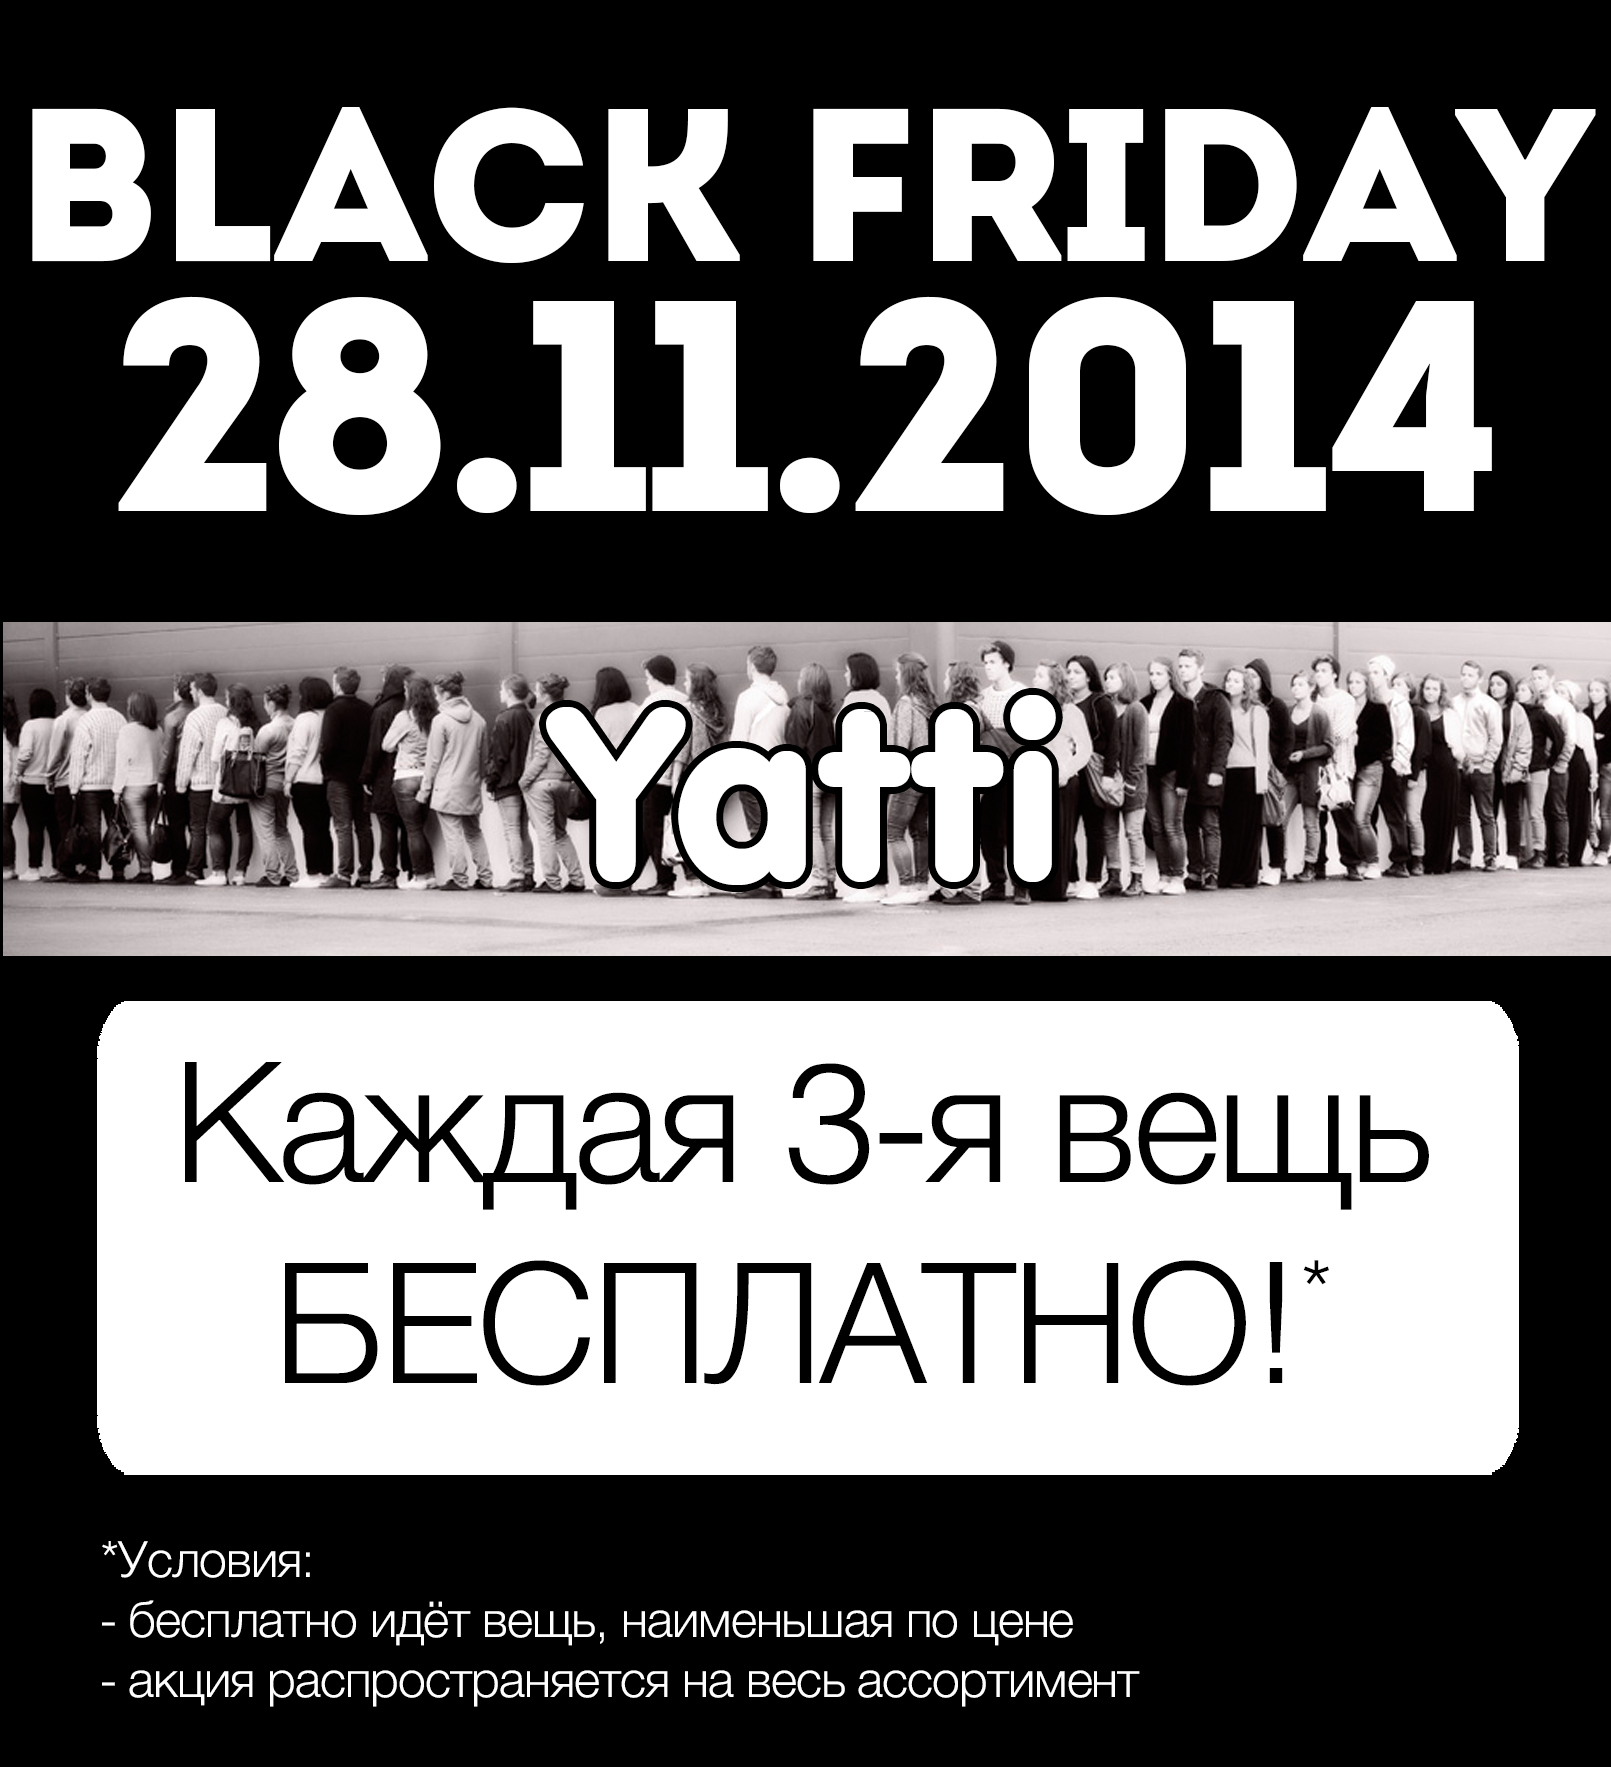 Black Friday 2014 (блэк фрайдэй 2014)